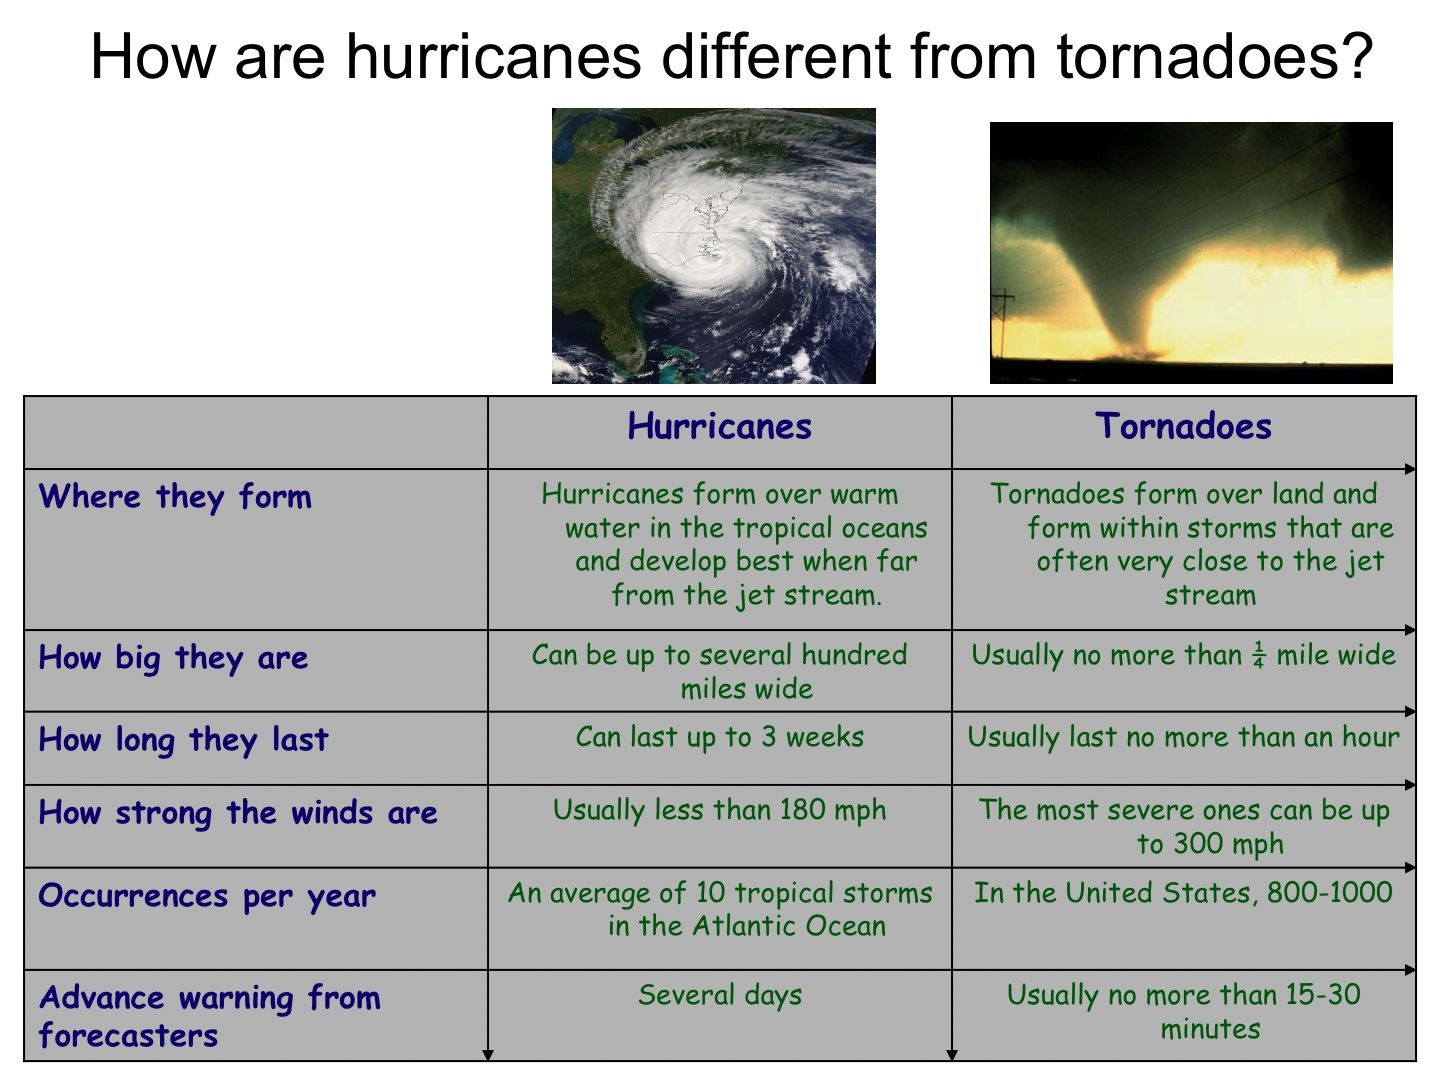 Table Describing The Differences Between Hurricanes And Tornadoes